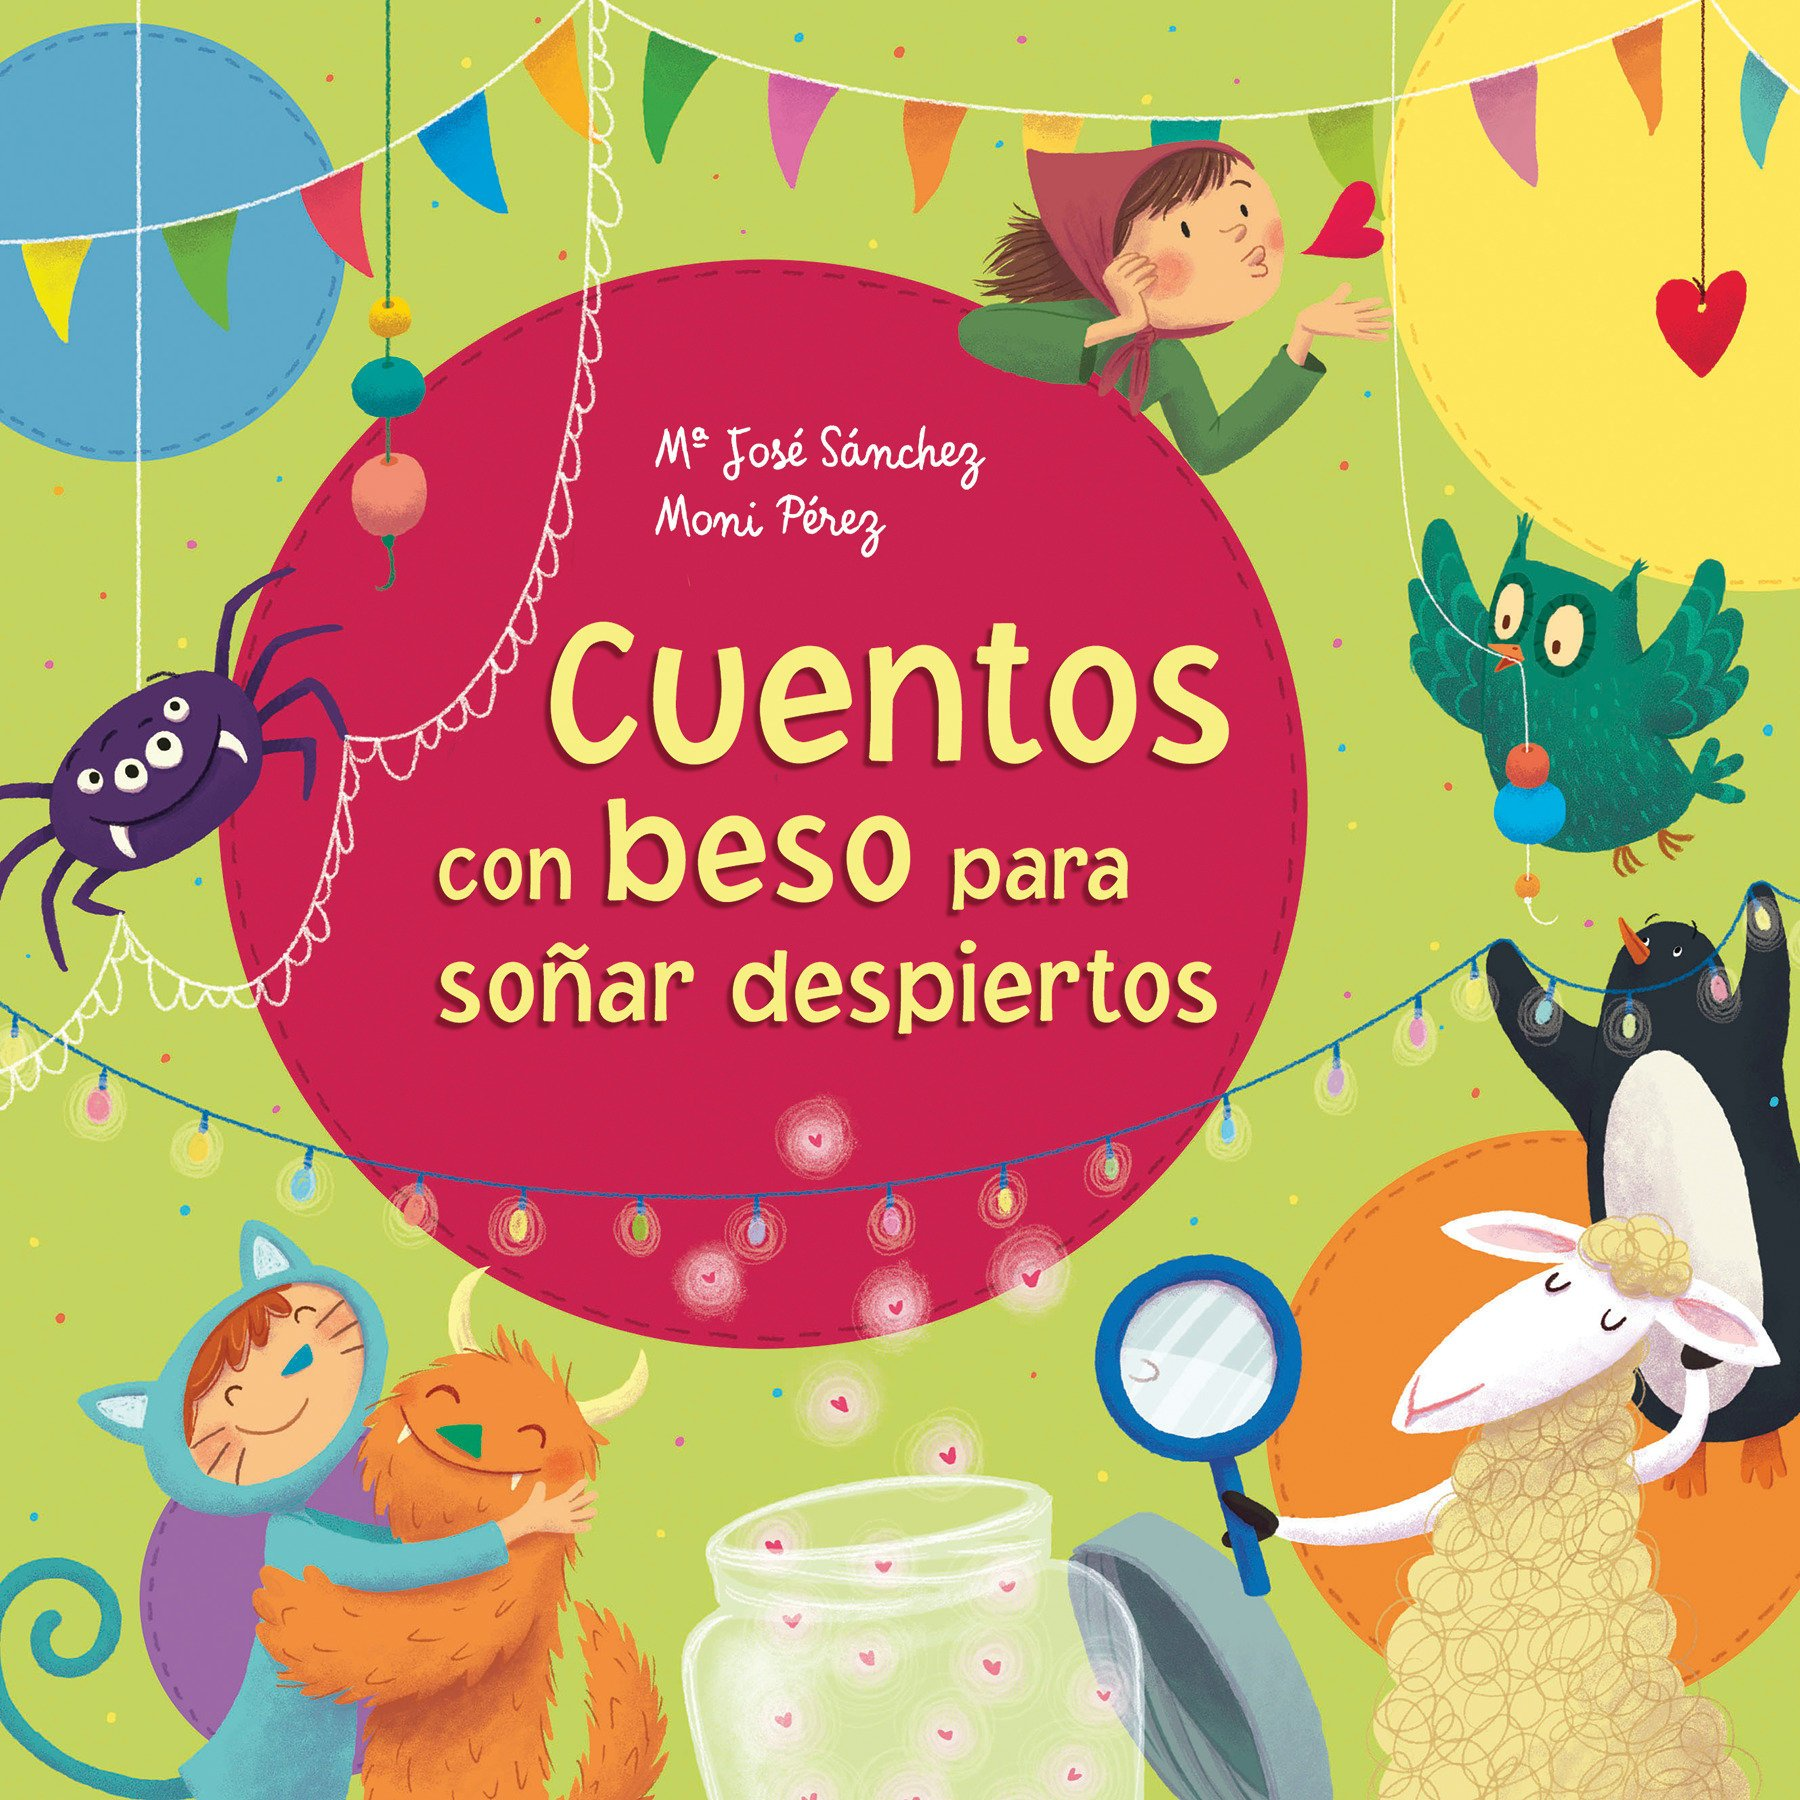 Cuentos con beso para soñar despiertos / Stories With a Kiss to Dream Awake  (Spanish Edition) (Spanish) Hardcover – January 31, 2017